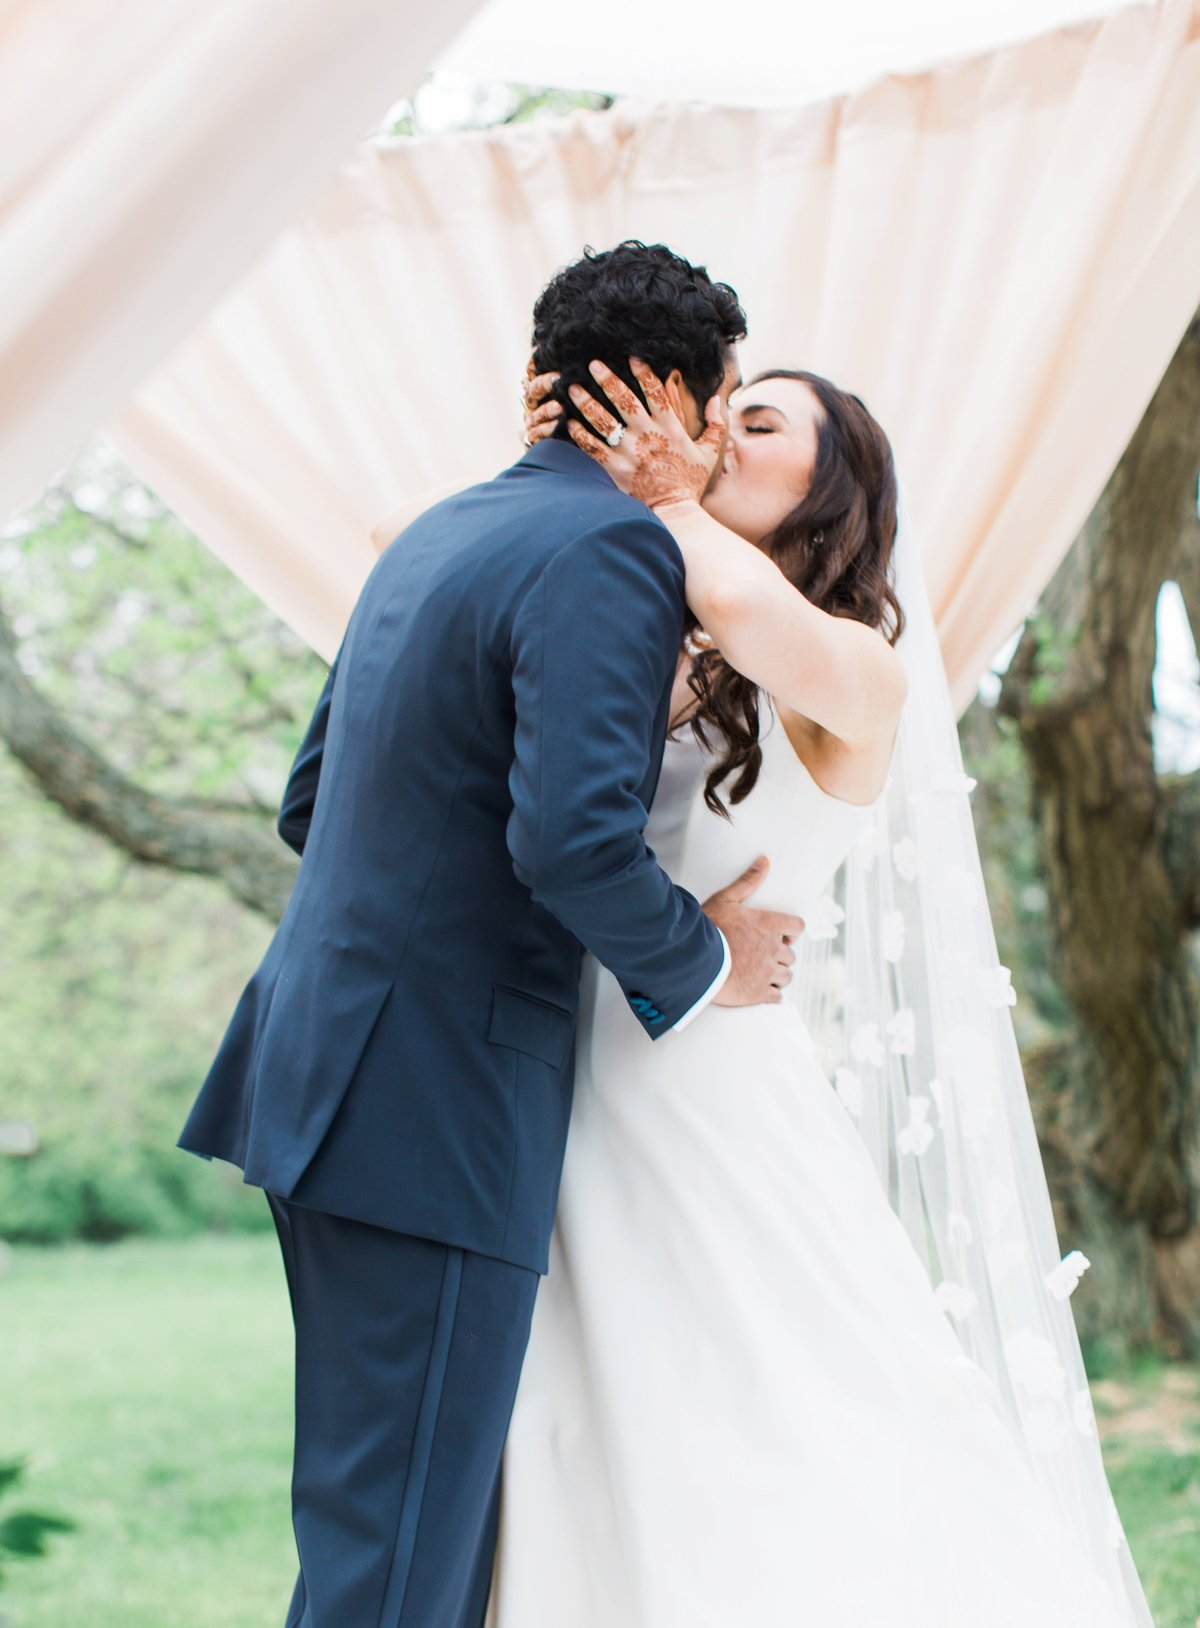 nicoleclareyphotography_hannah+akash_cincinnati_wedding_0025